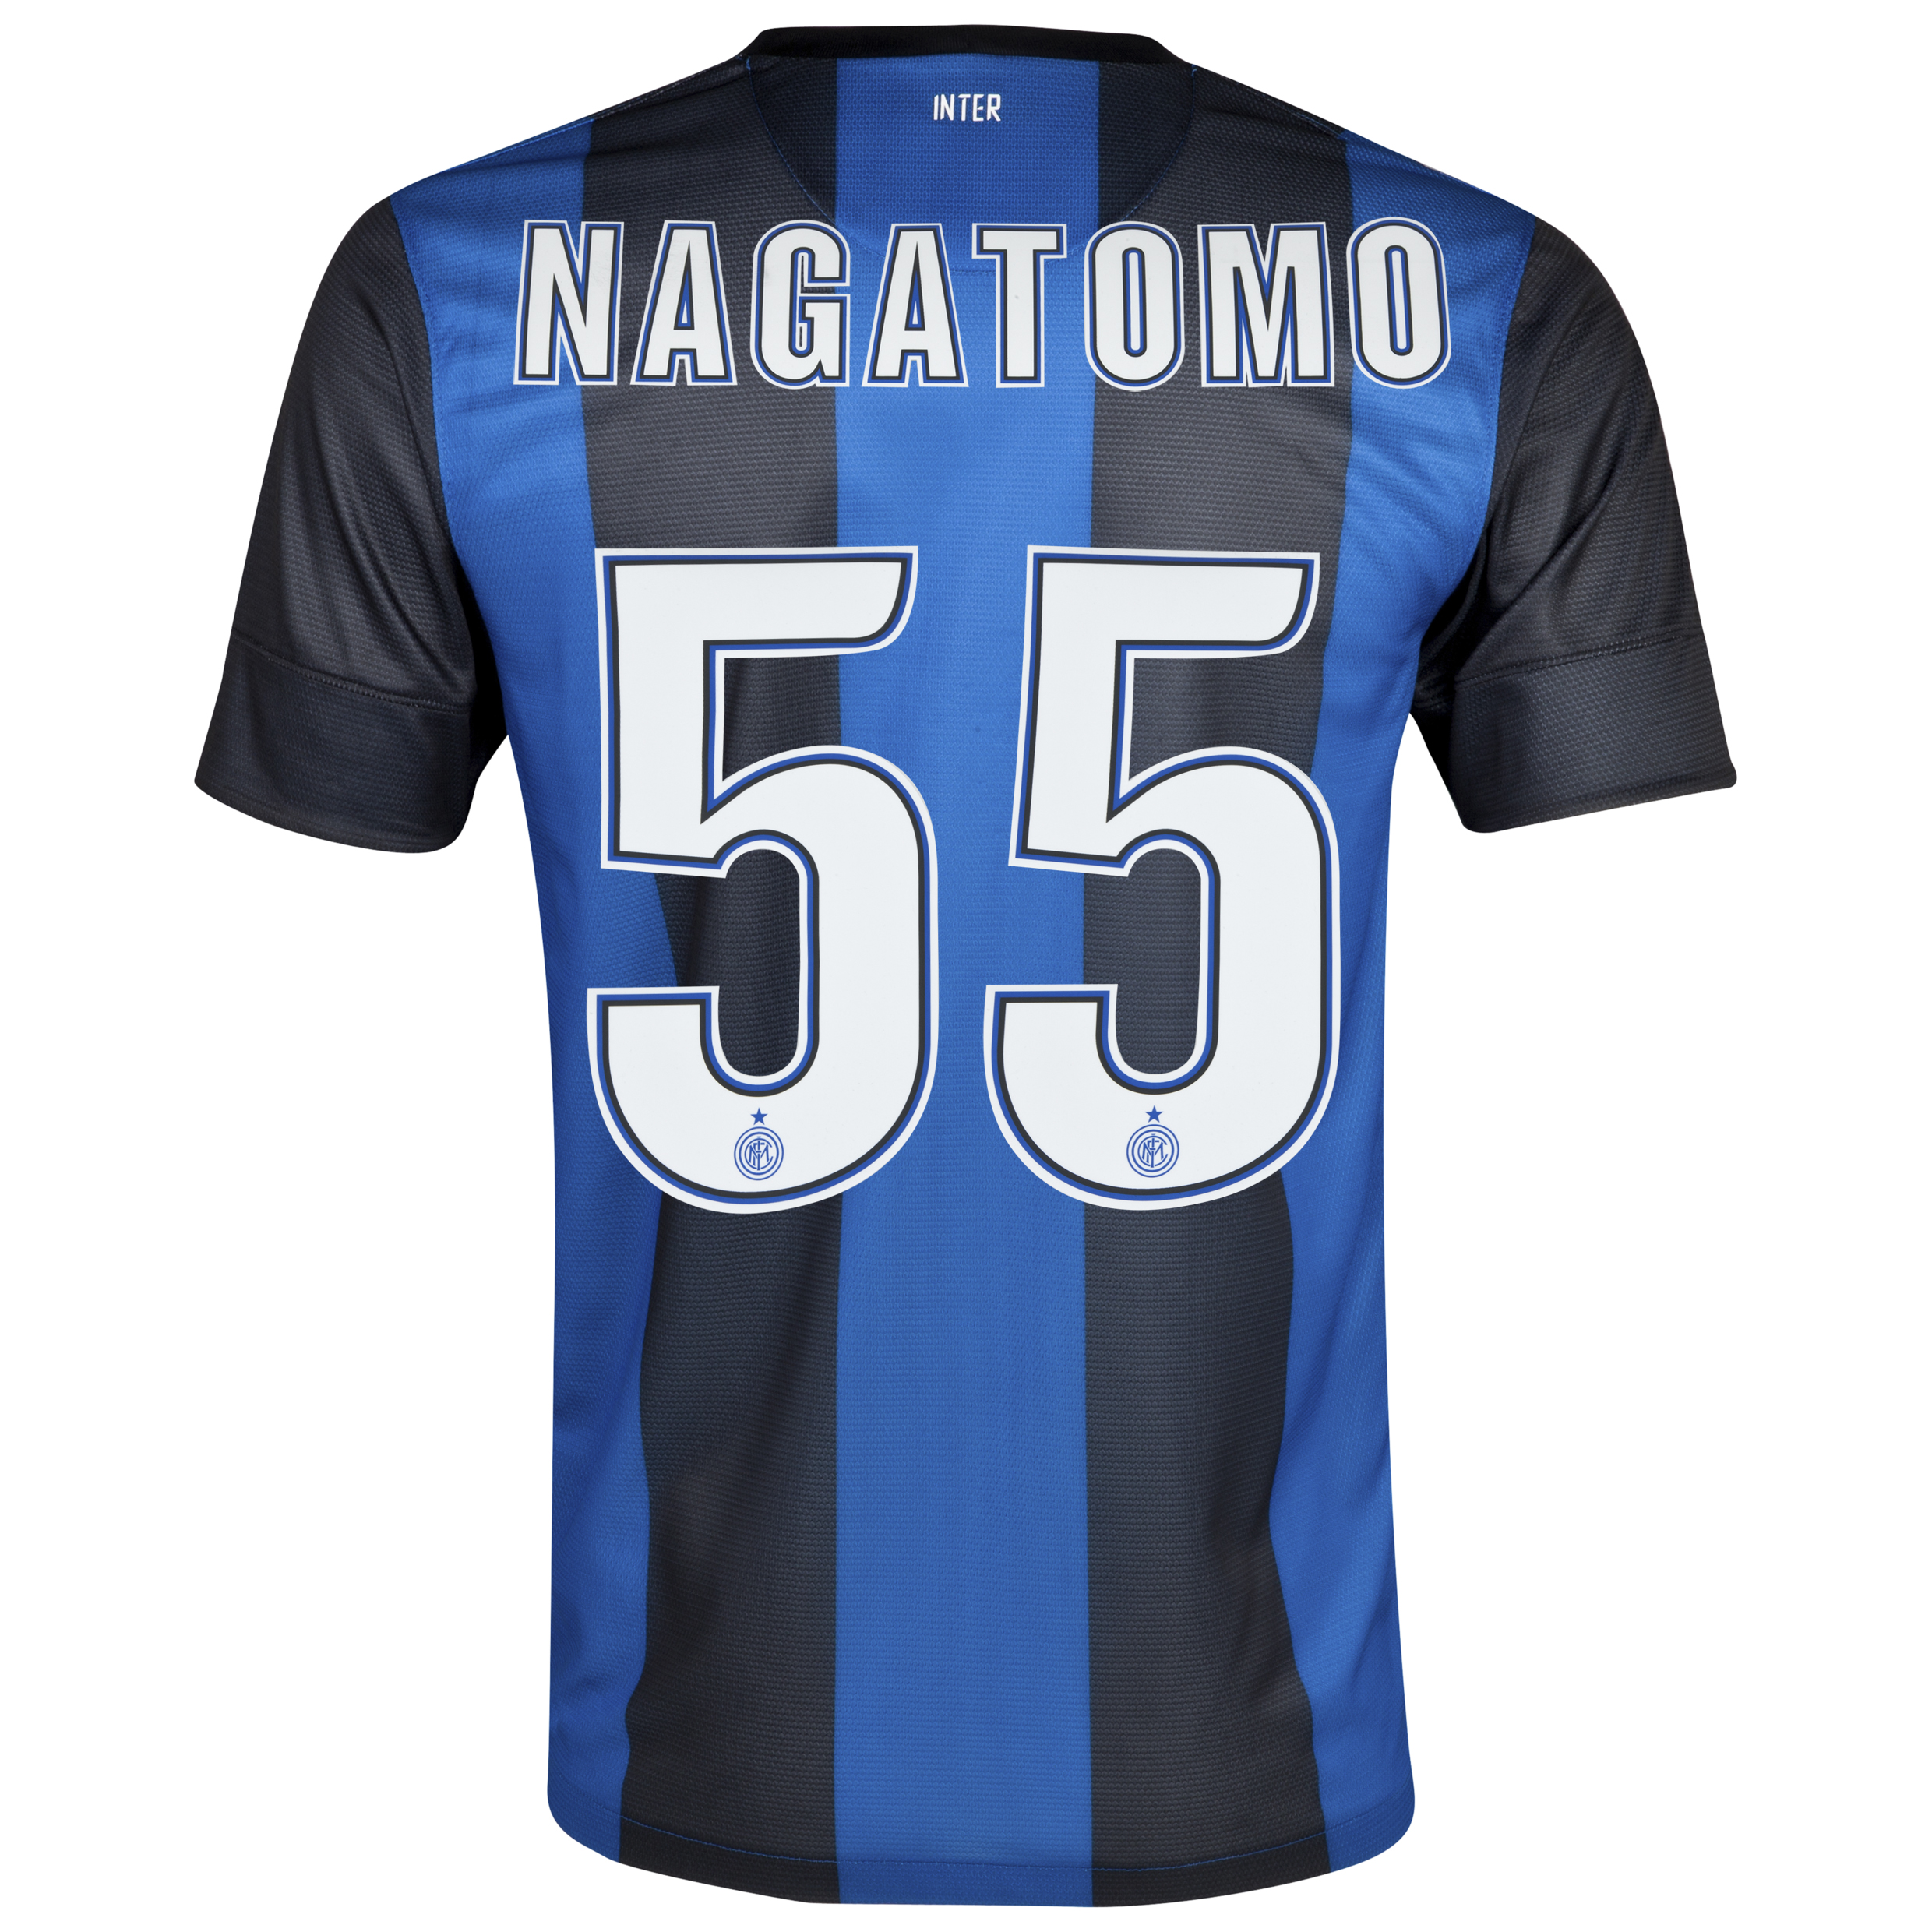 Inter Milan Home Shirt 2012/13 with Nagatomo 55 printing